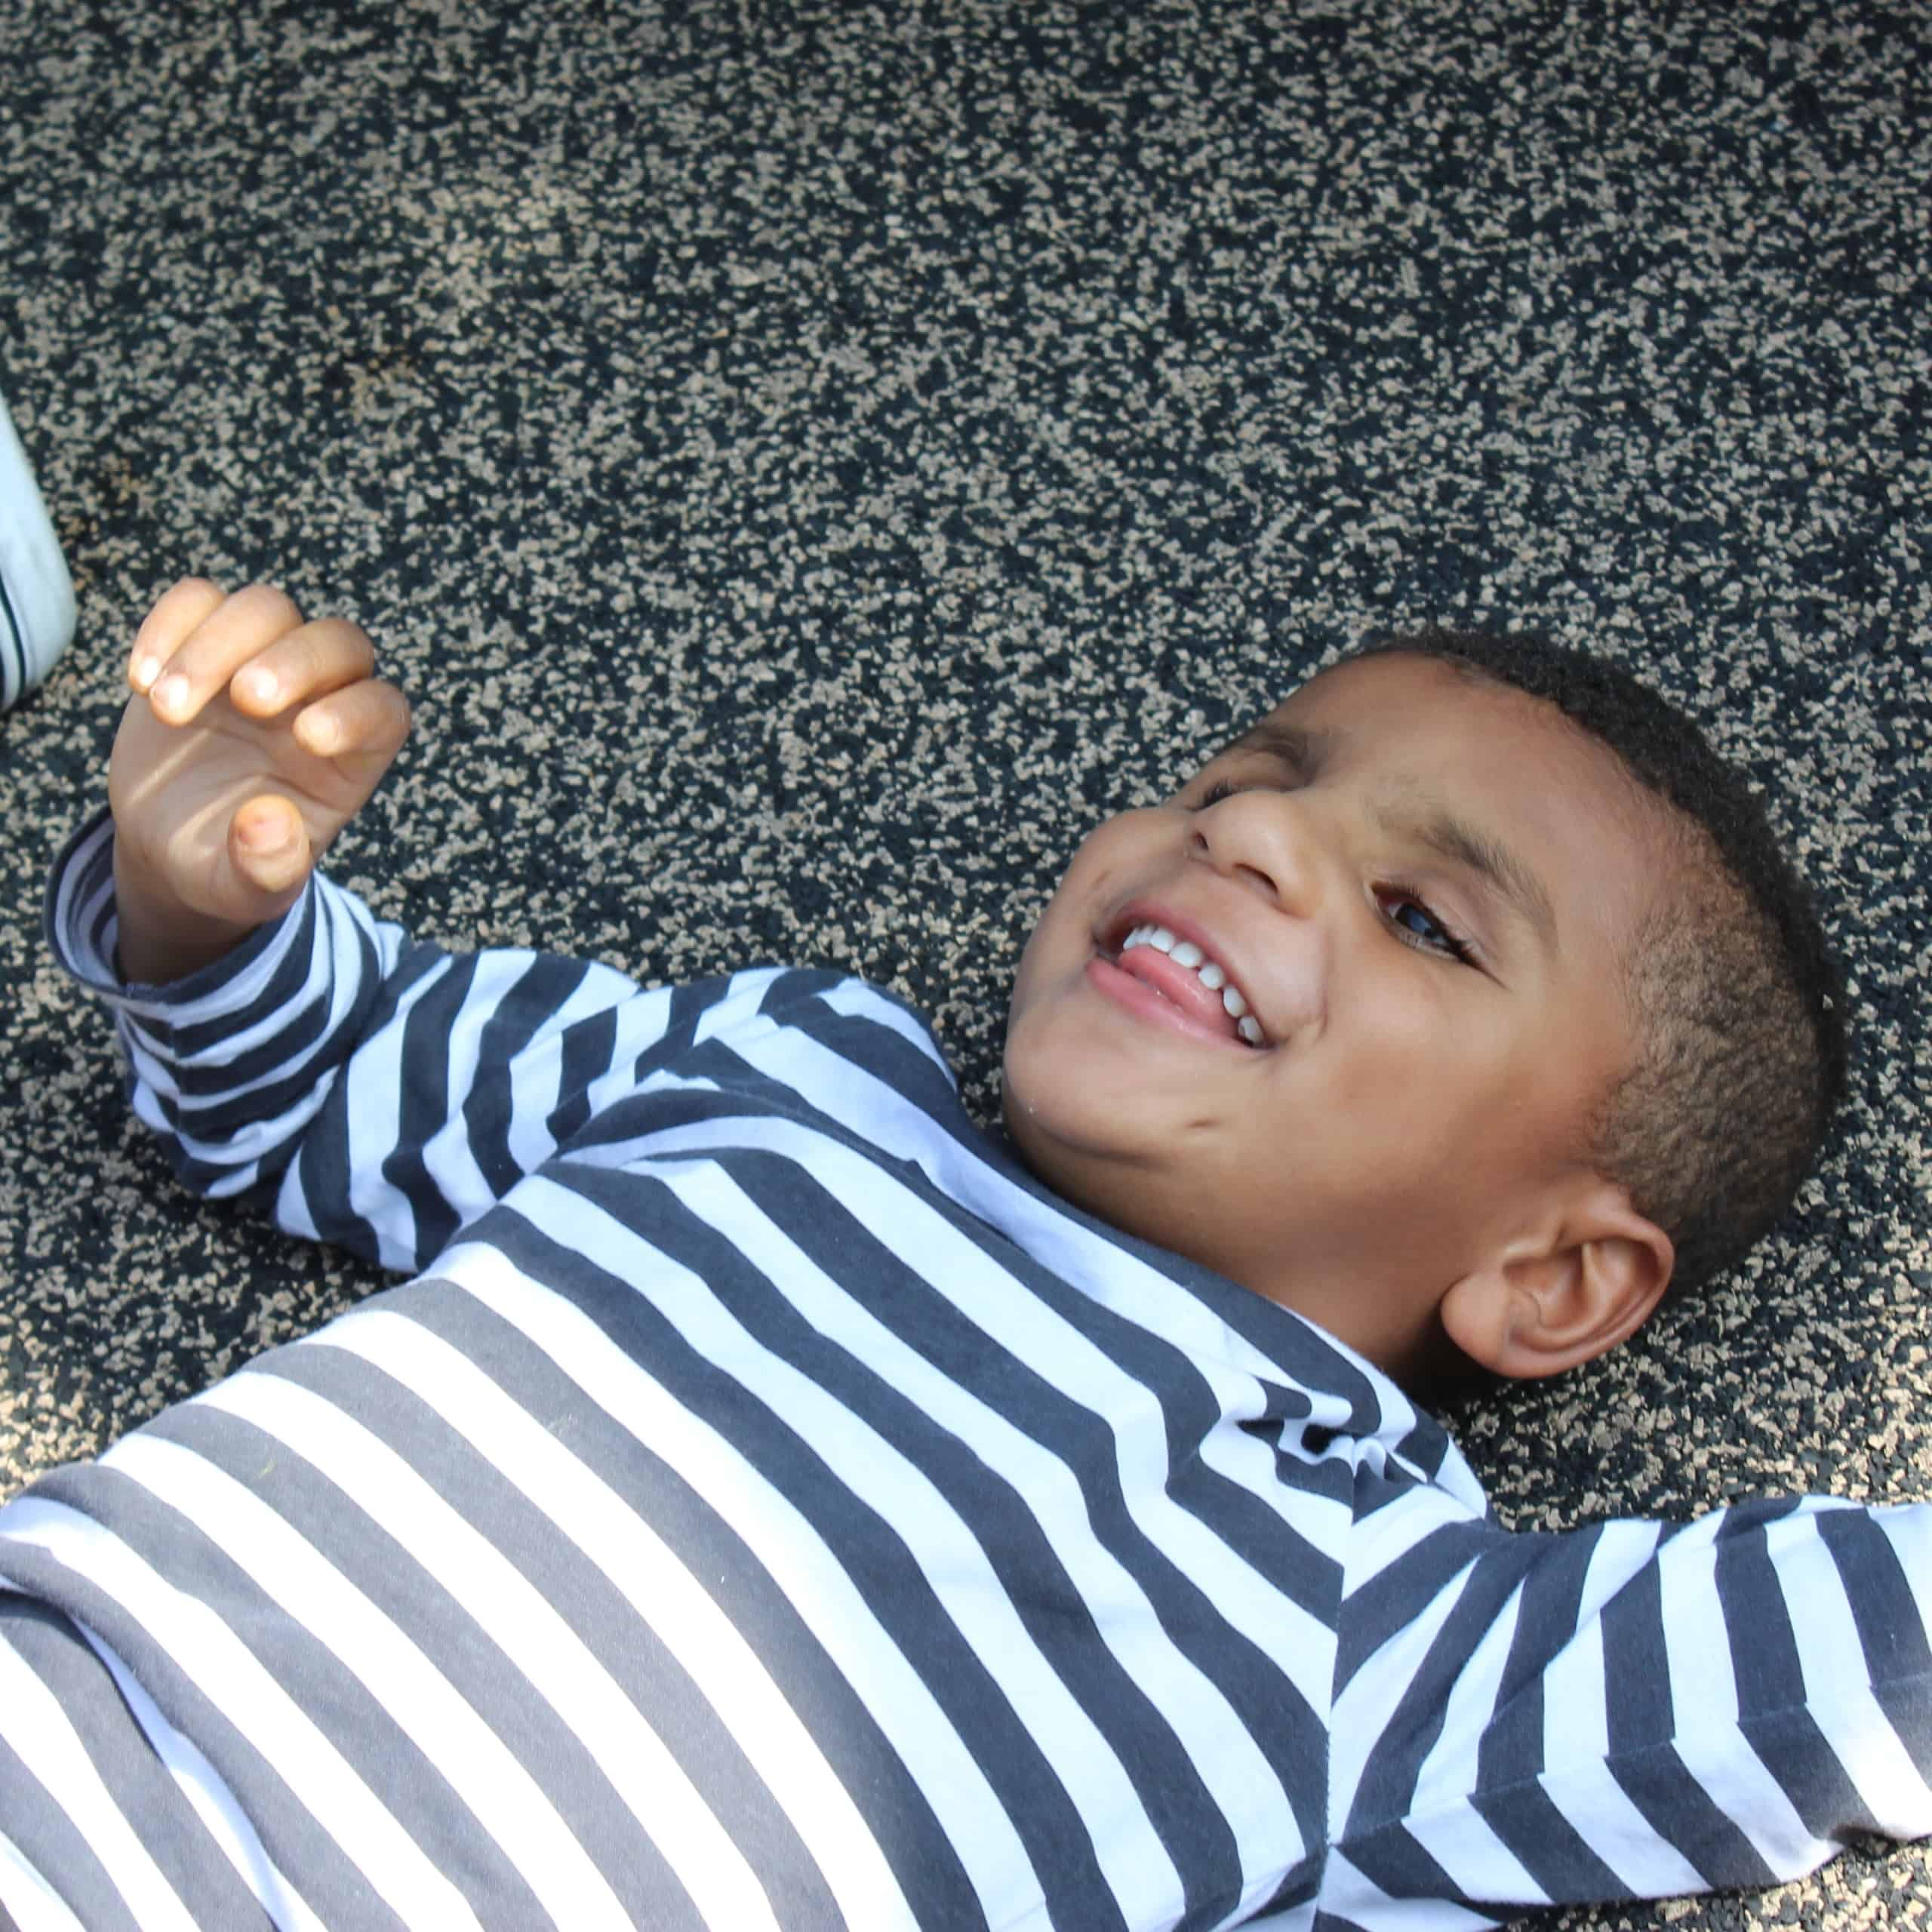 A preschool boy lays on the playground floor and smiles while waving his arms